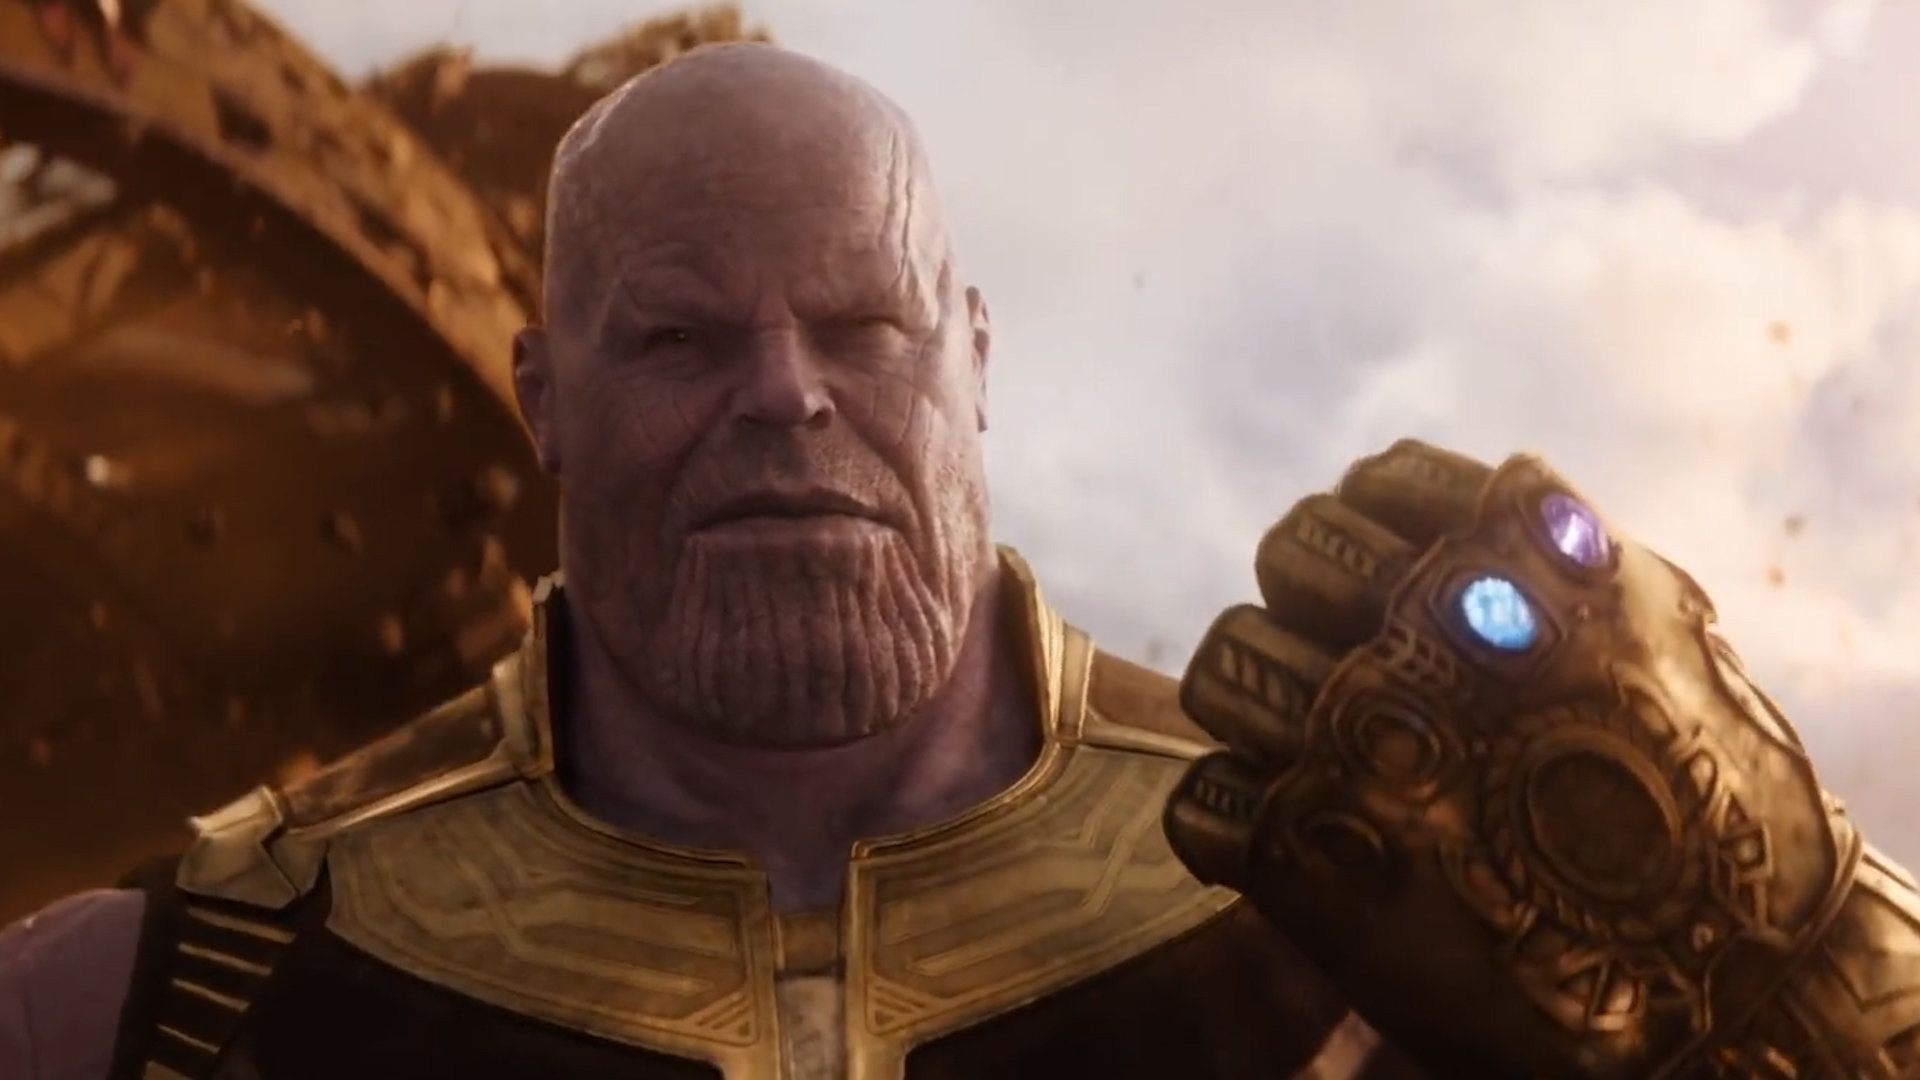 The ending of Avengers: Infinity War wasnt as thrilling as it should have been